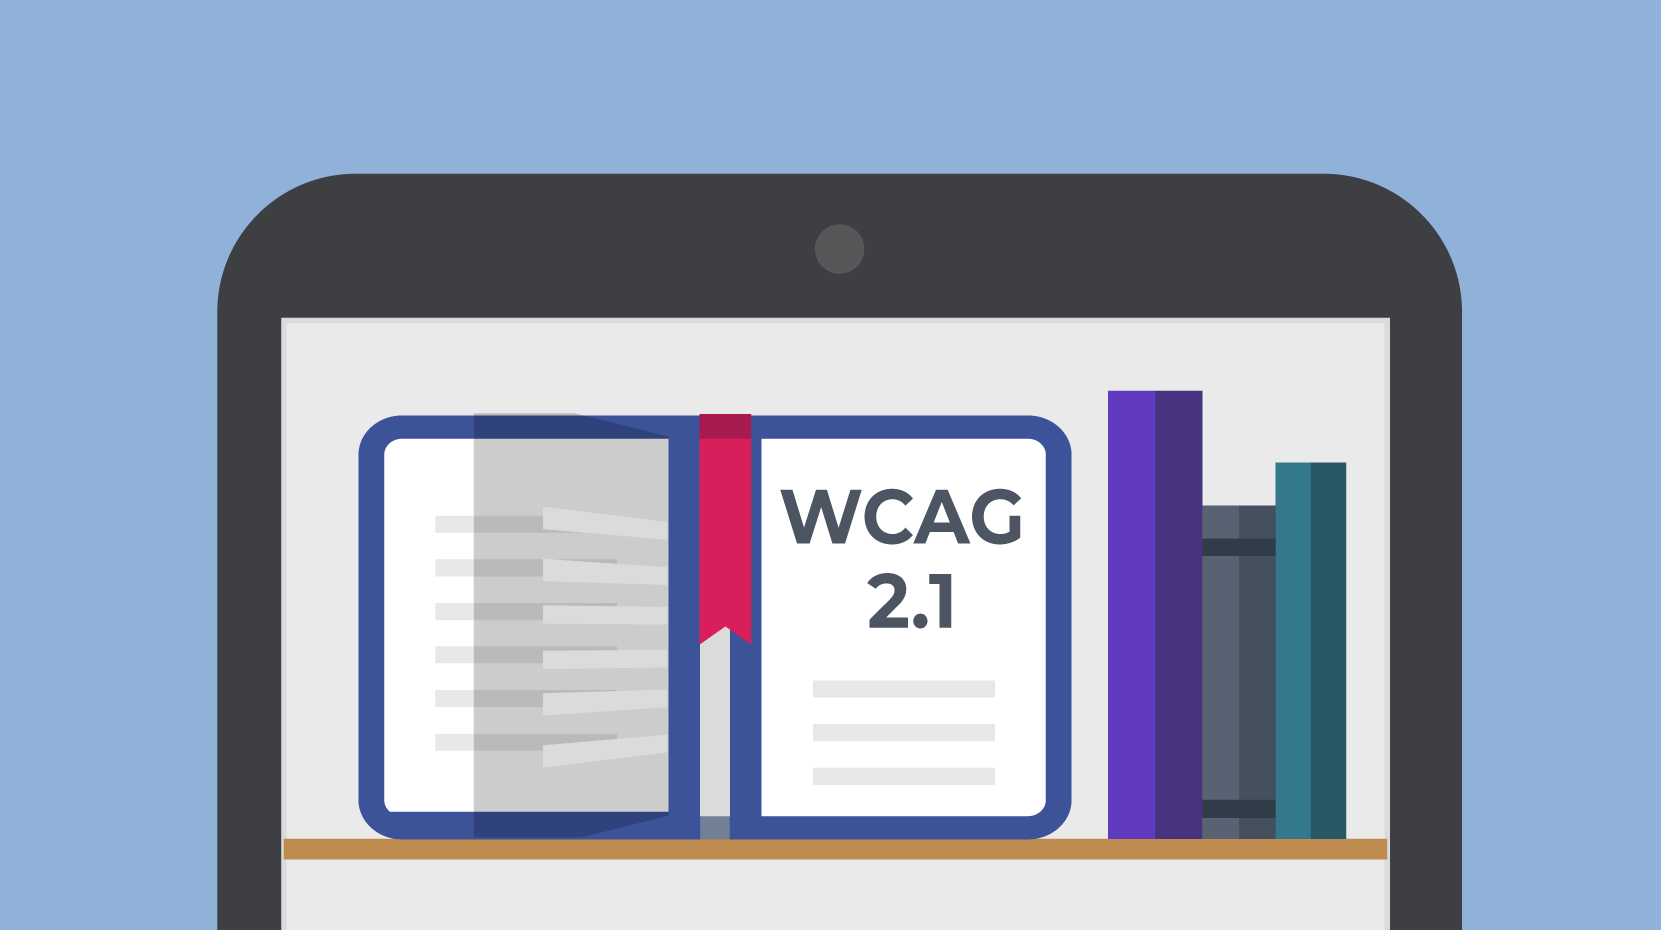 A smartphone screen showing a bookshelf. An open book is labeled WCAG 2.1.